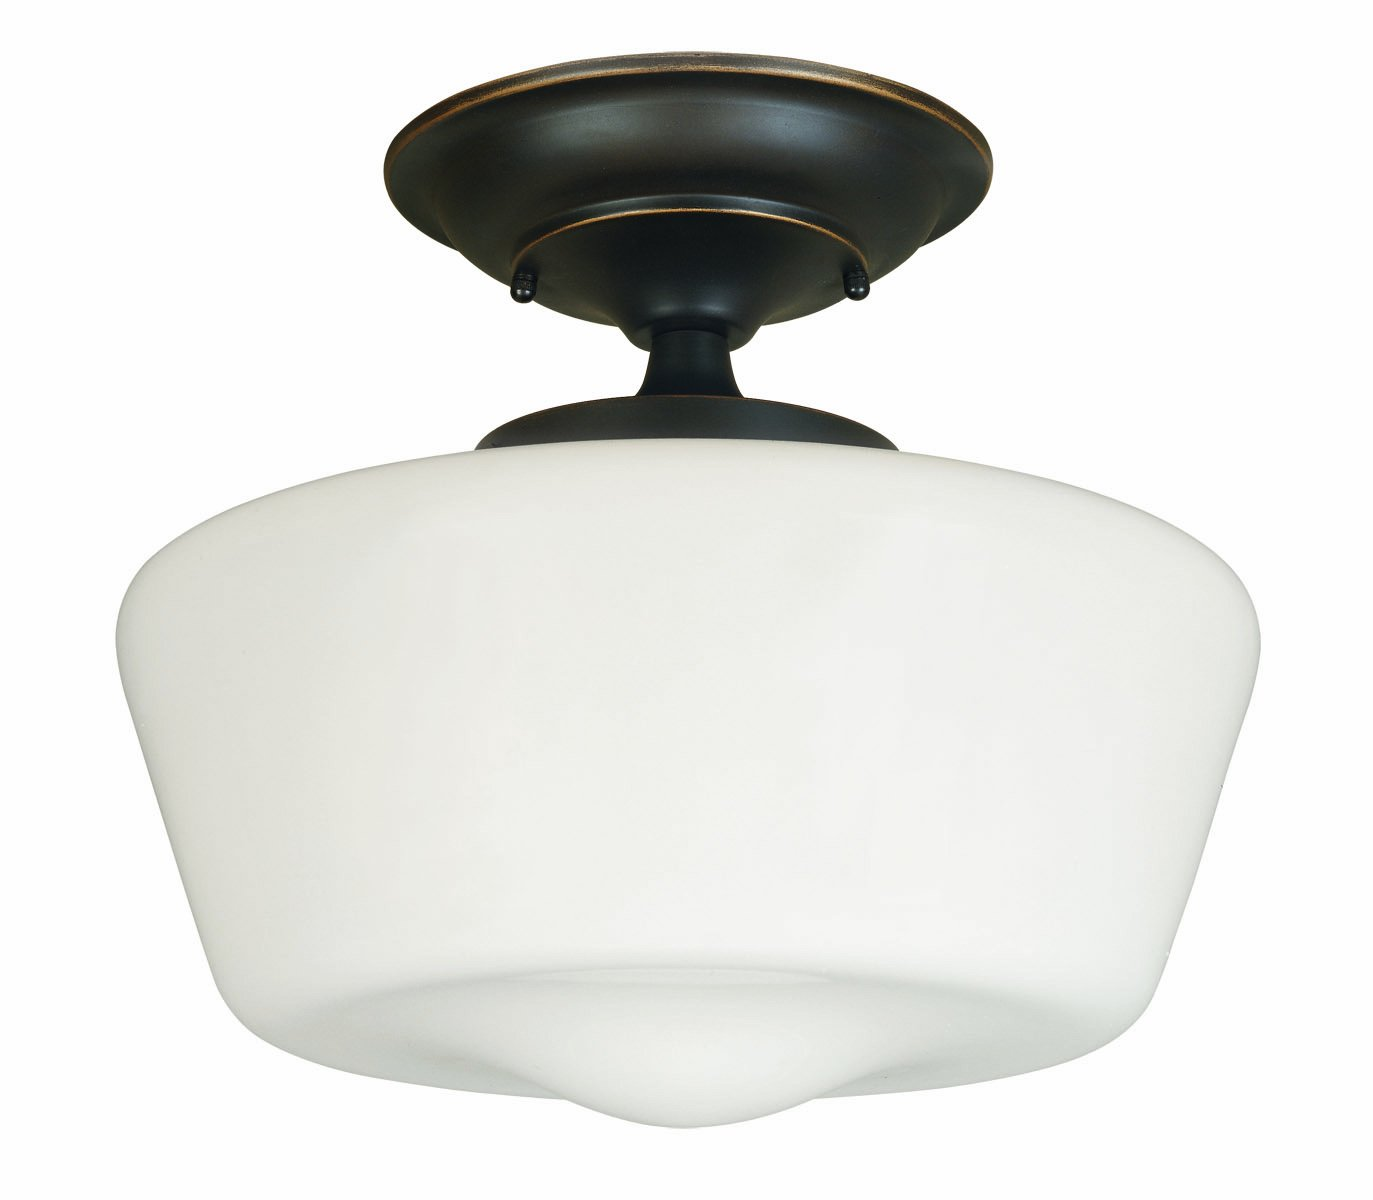 Flush Mount Kitchen Ceiling Lights World Imports Lighting 9007 88 Luray 1 Light Semi Flush Light